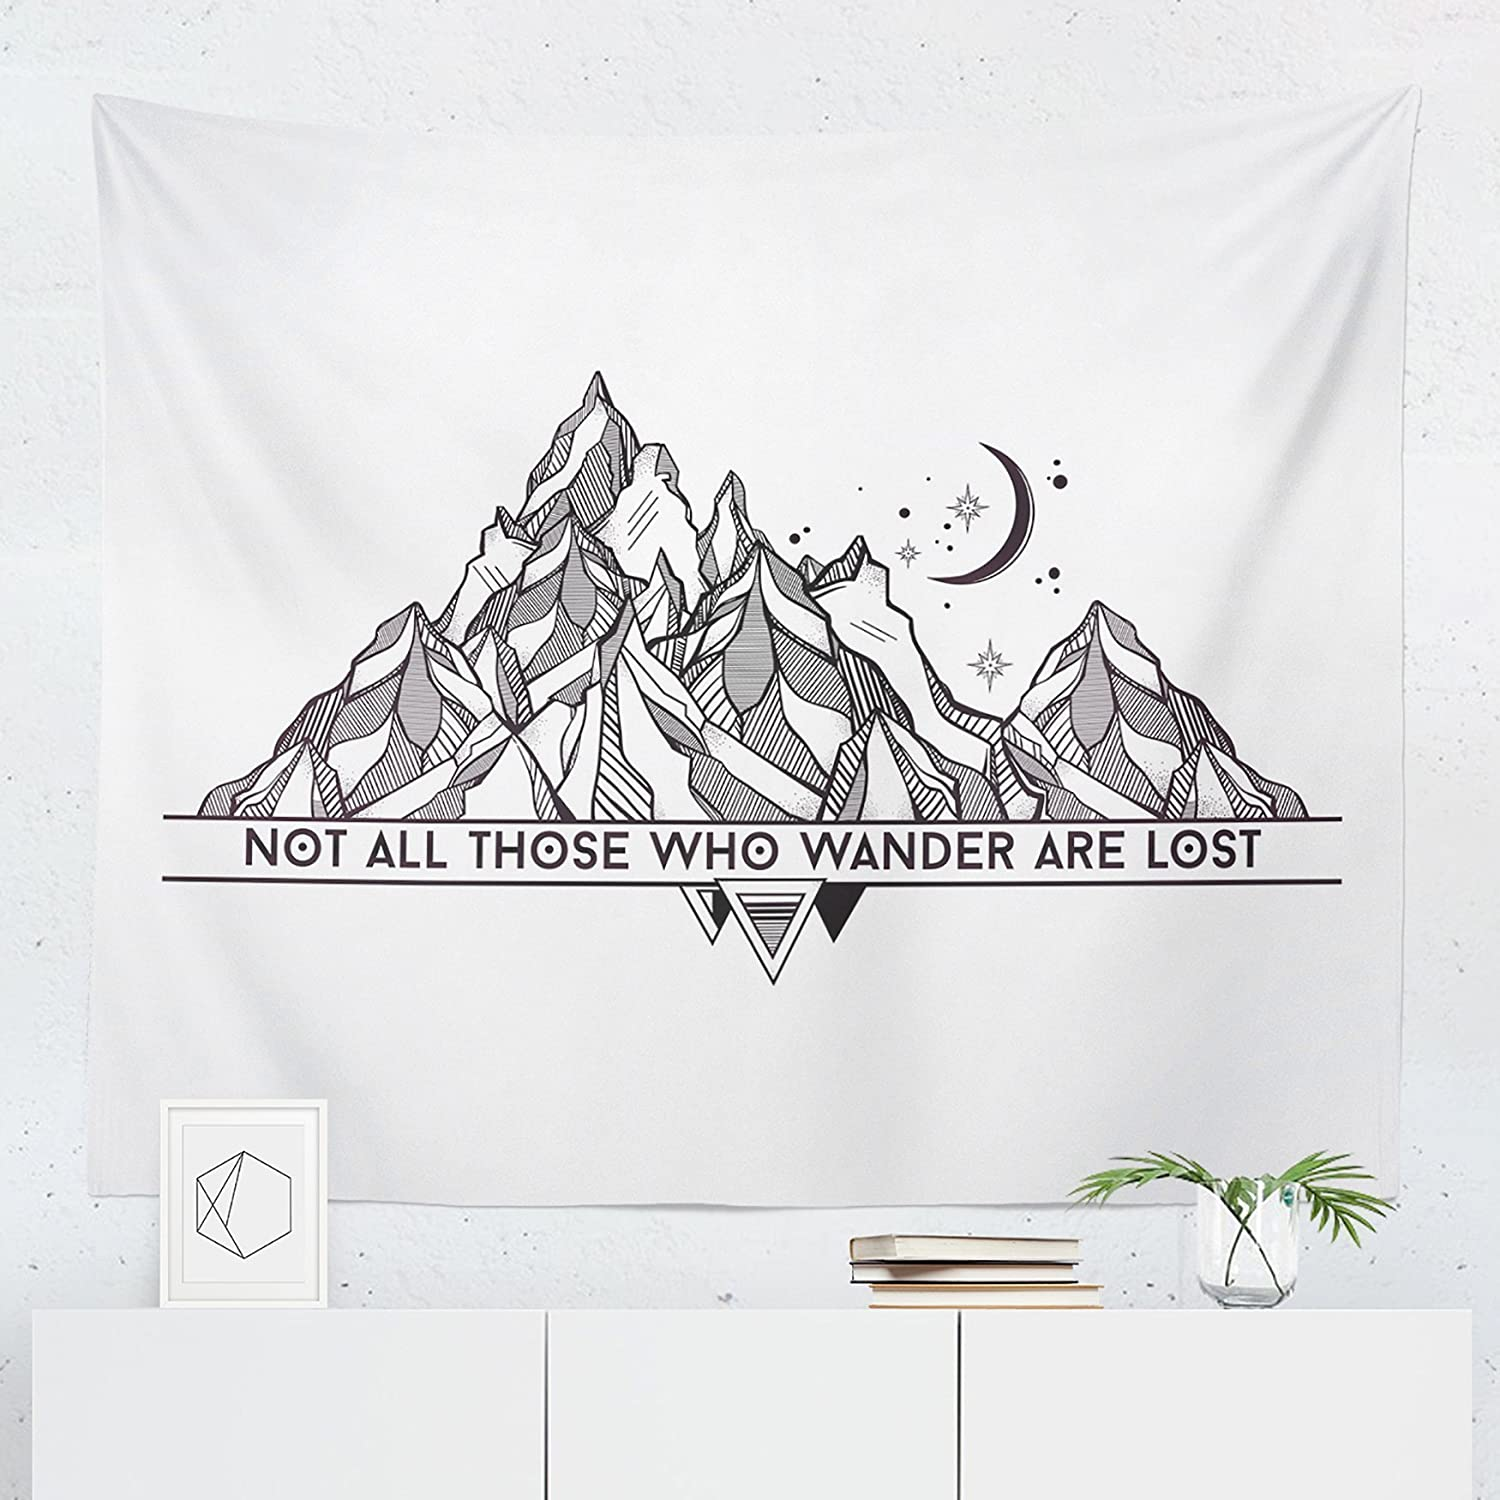 Wanderlust Tapestry - Adventure Travel Nature Wall Tapestries Hanging Décor Bedroom Dorm College Living Room Home Art Print Decoration Decorative - Printed in the USA - Small Medium Large Sizes